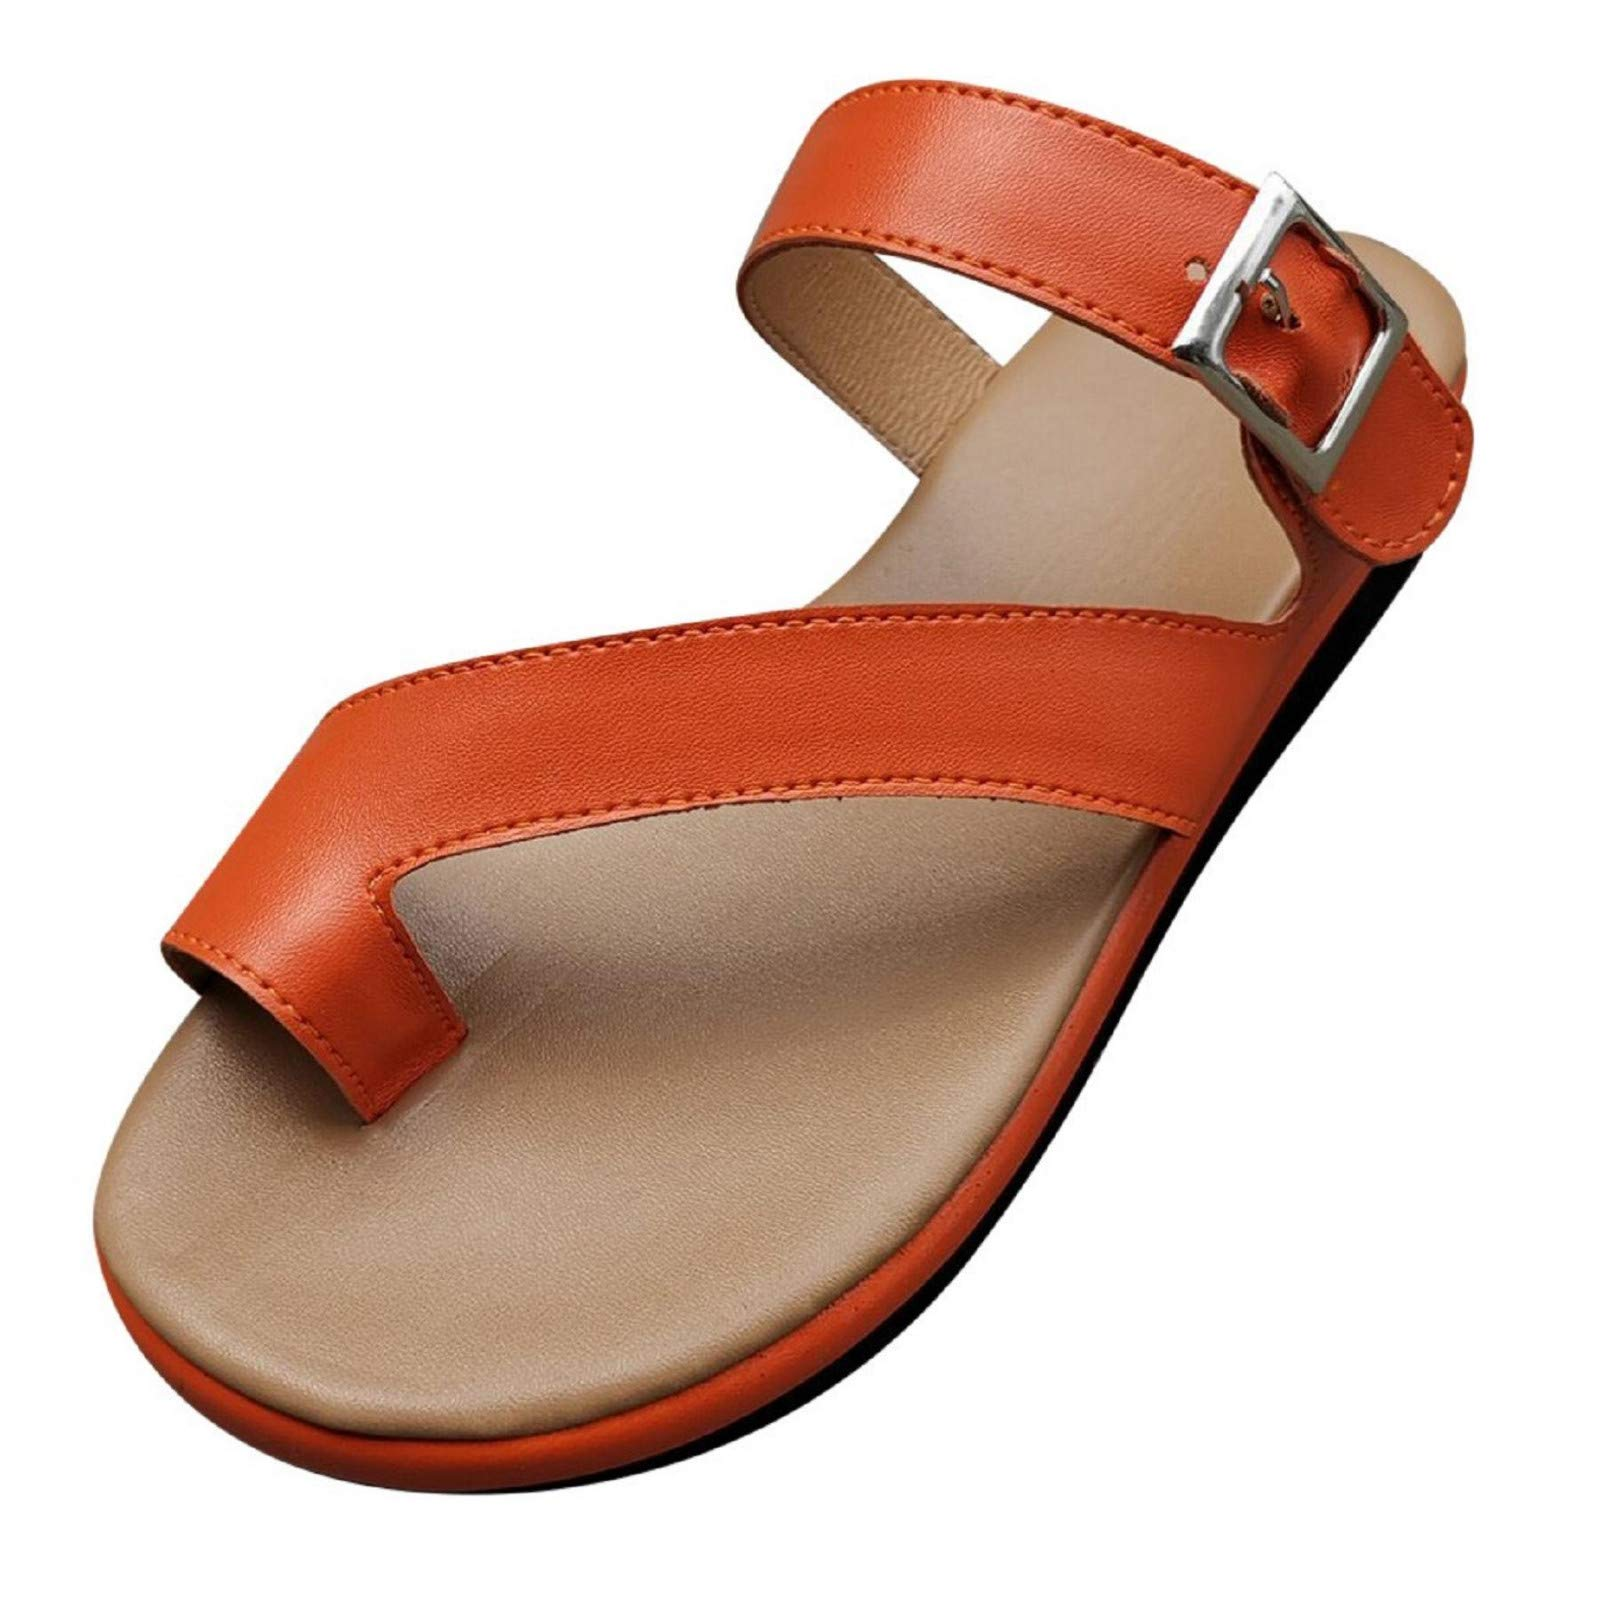 Ladies Women Comfy Platform Wedges Sandal, 2019 Summer Beach Travel Shoes Fashion Comfortable Buckle Thongs Sandals Red